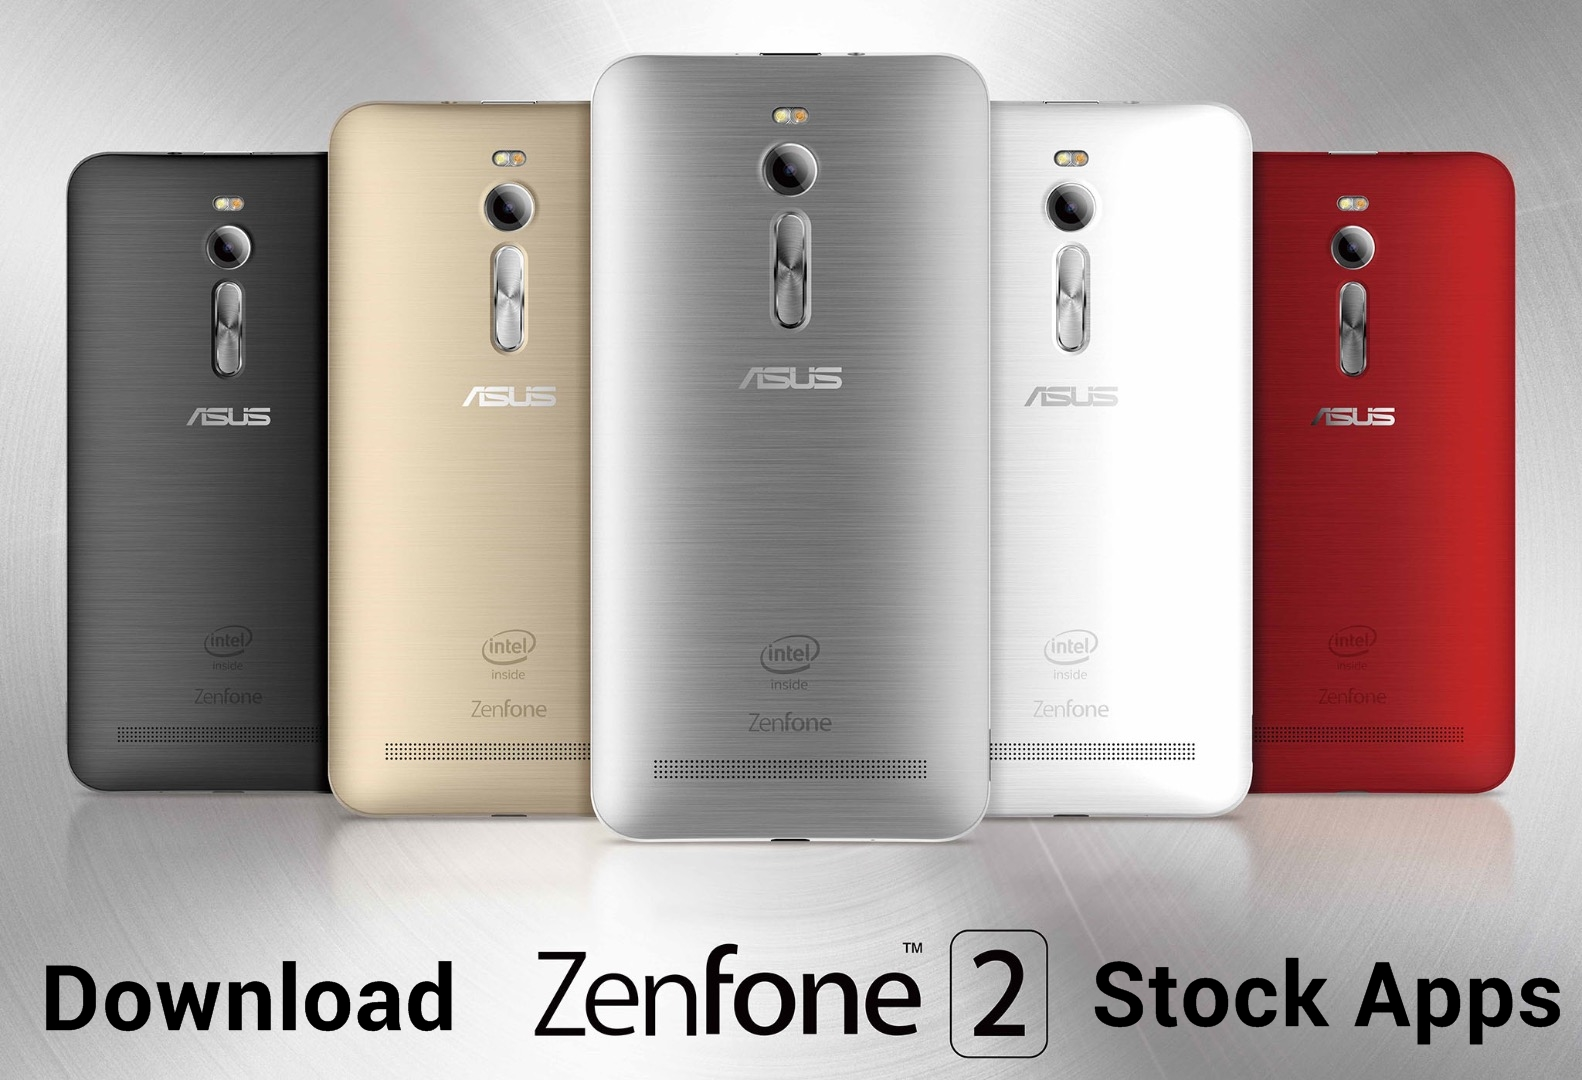 ZenFone 2 Stock Apps